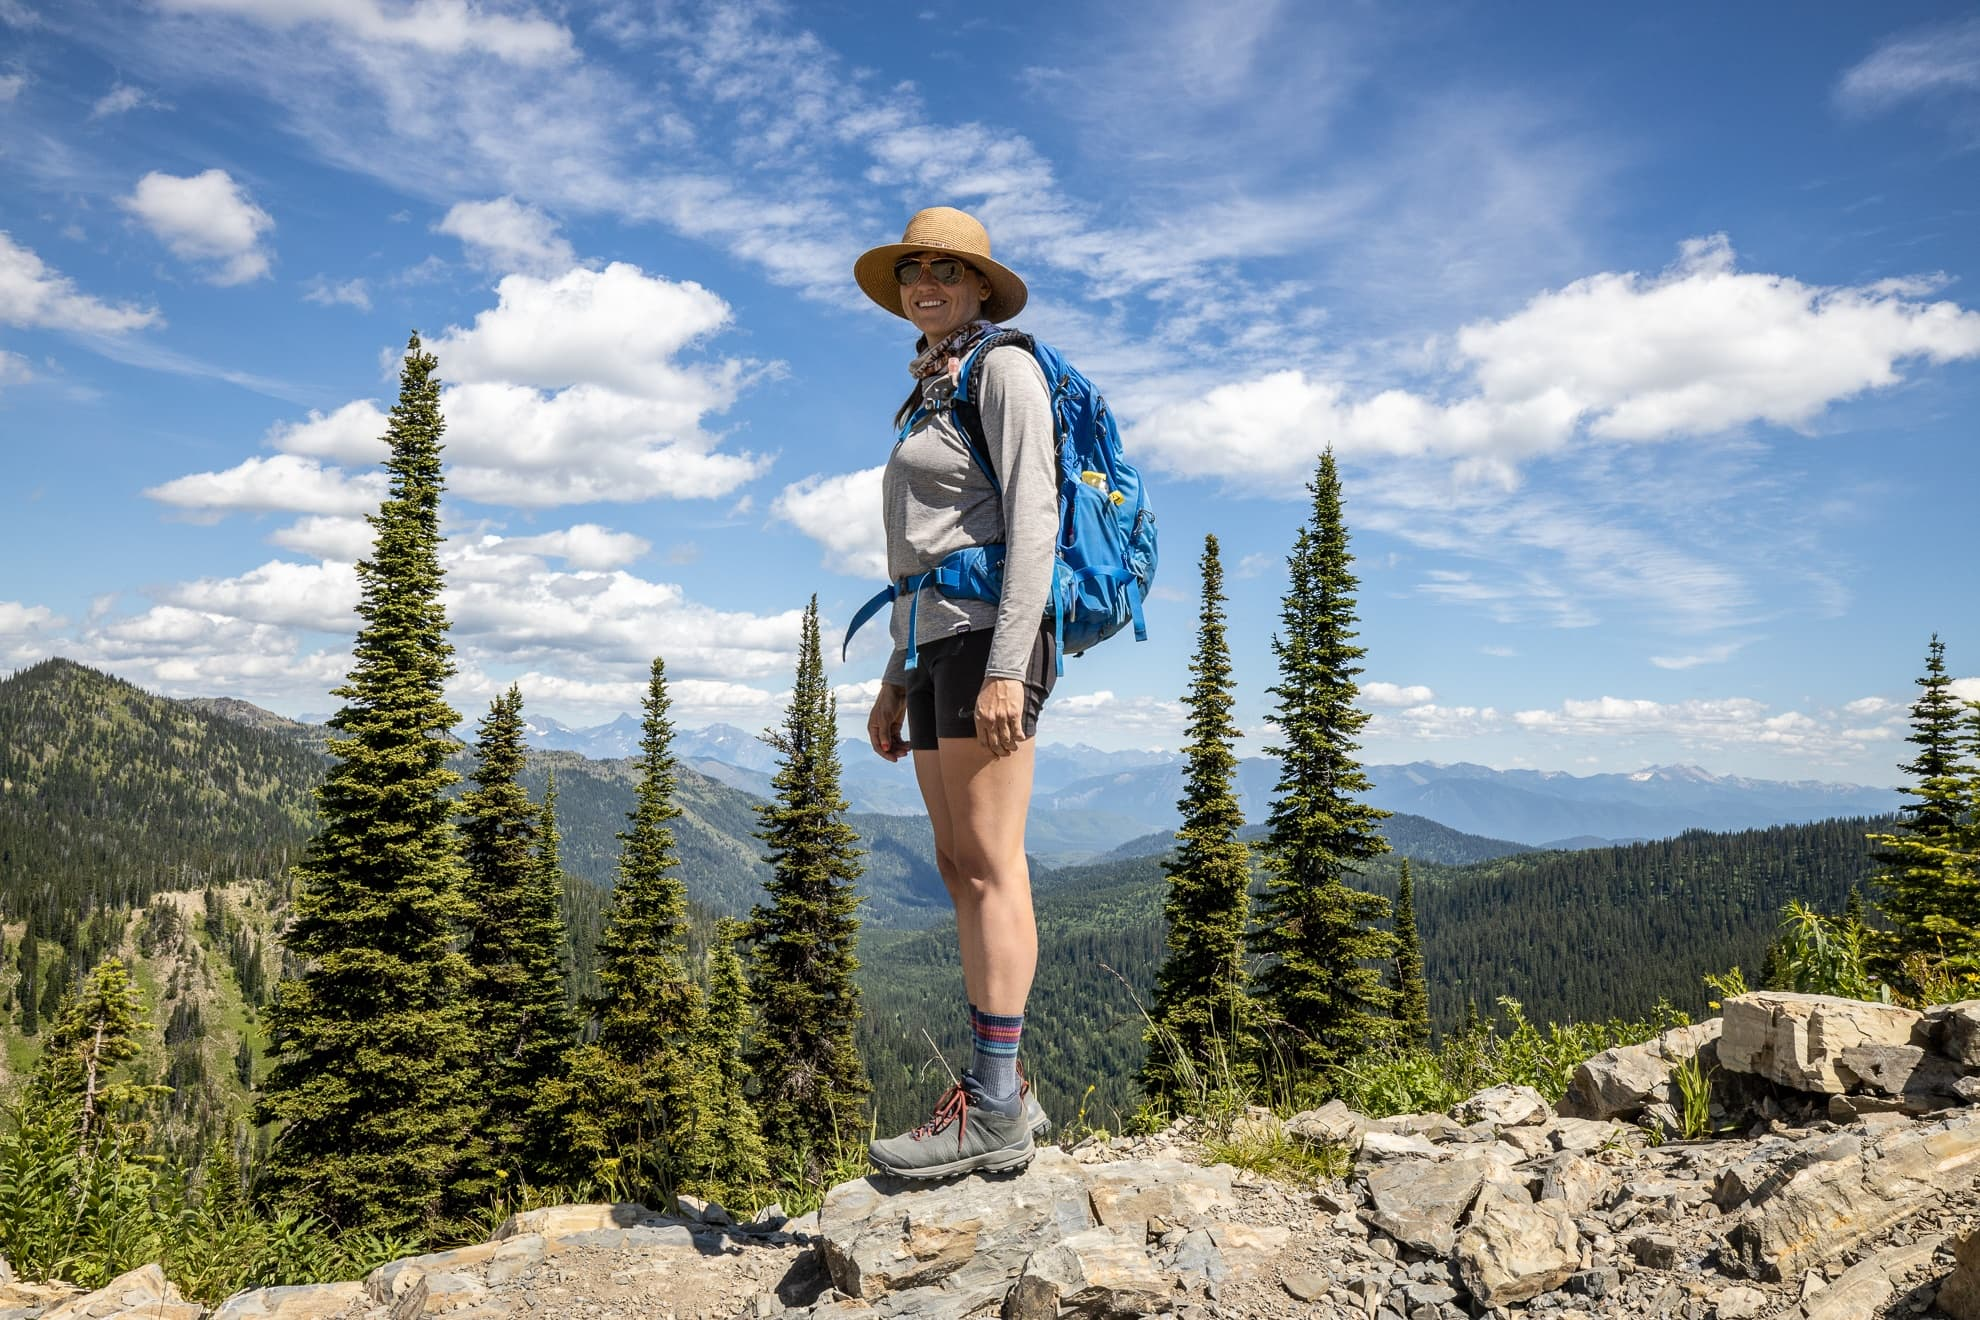 Oboz Sypes Hiking Boot Review: Supportive & Comfortable with Eco-Friendly Materials